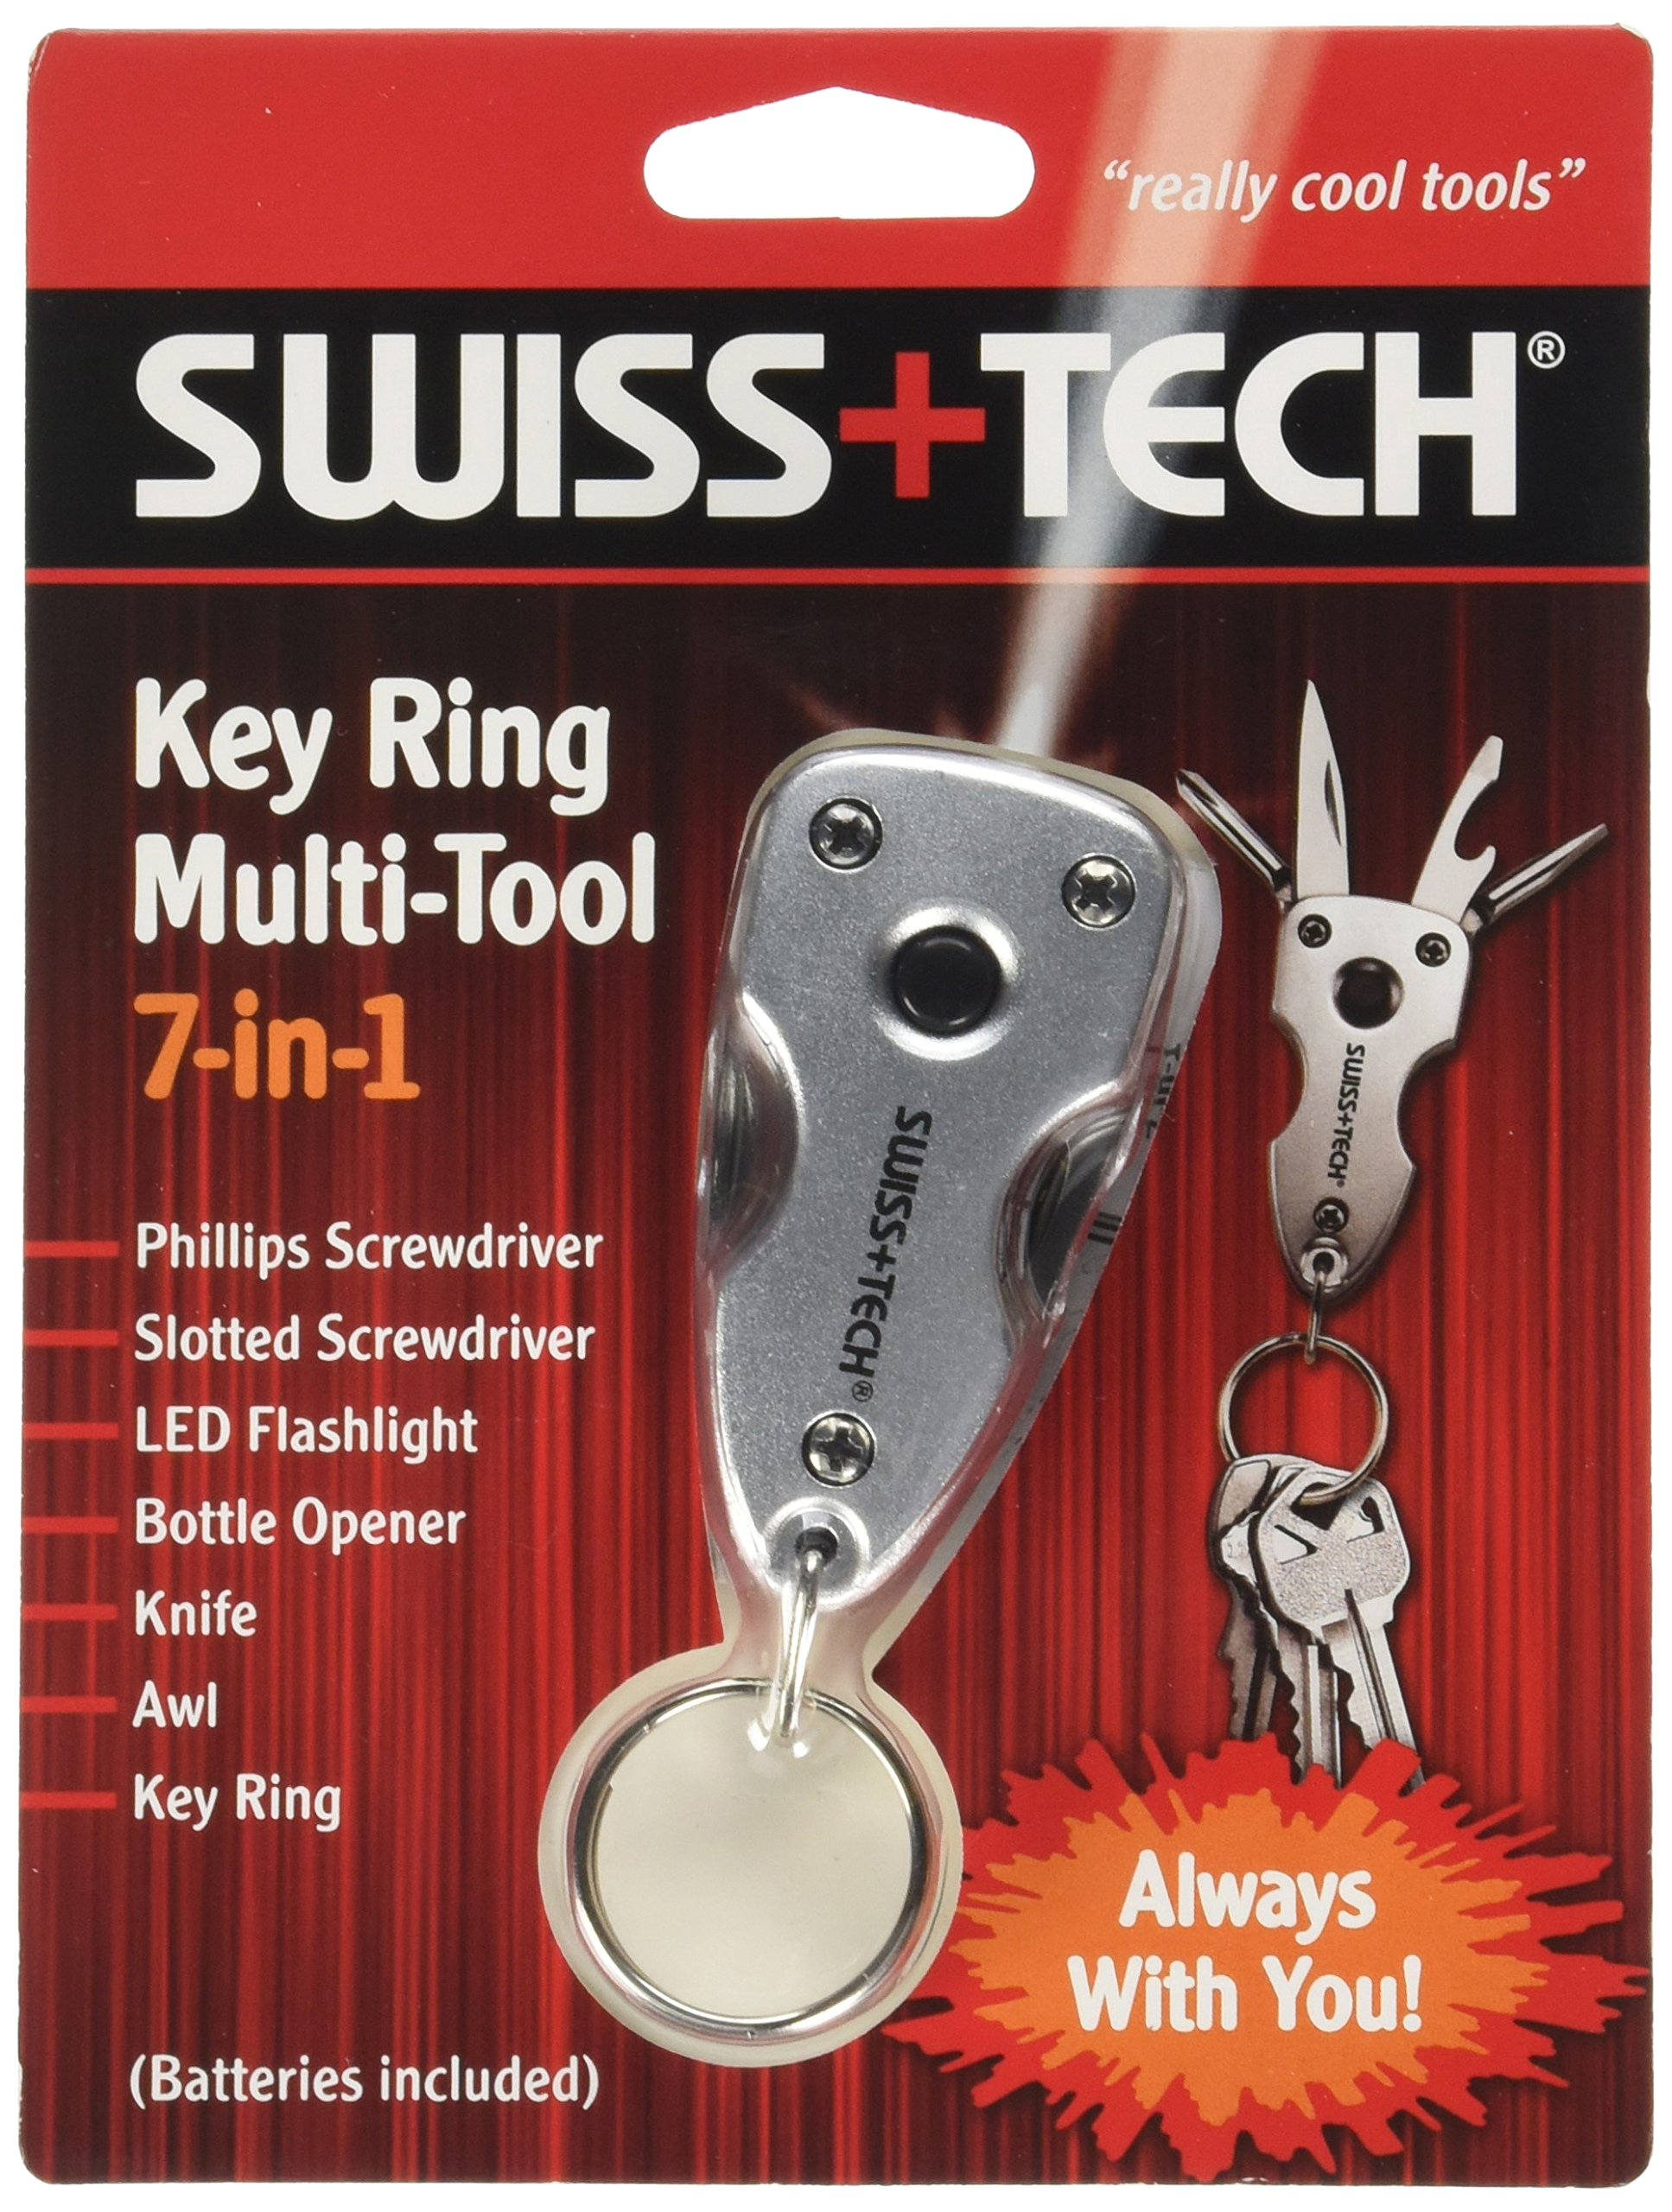 Swiss+Tech ST60300M2 Key Ring Multitools (7-in-1) with LED Flashlight for Auto Safety, Outdoors, Camping - 2 Pack, Silver